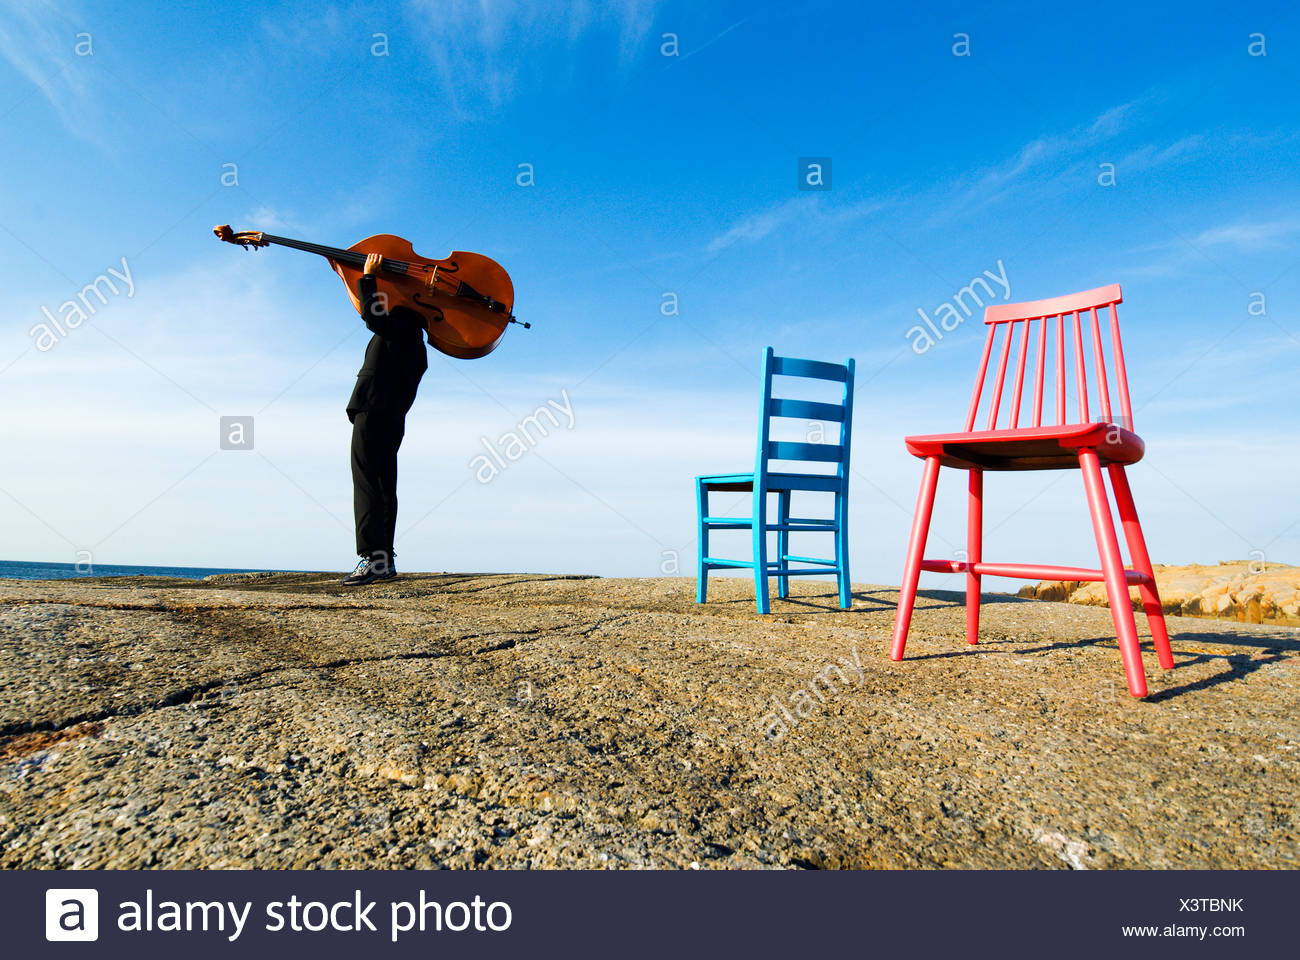 Jazz musician by two chairs carrying a contrabass on flat rock against blue sky and clouds - Stock Image